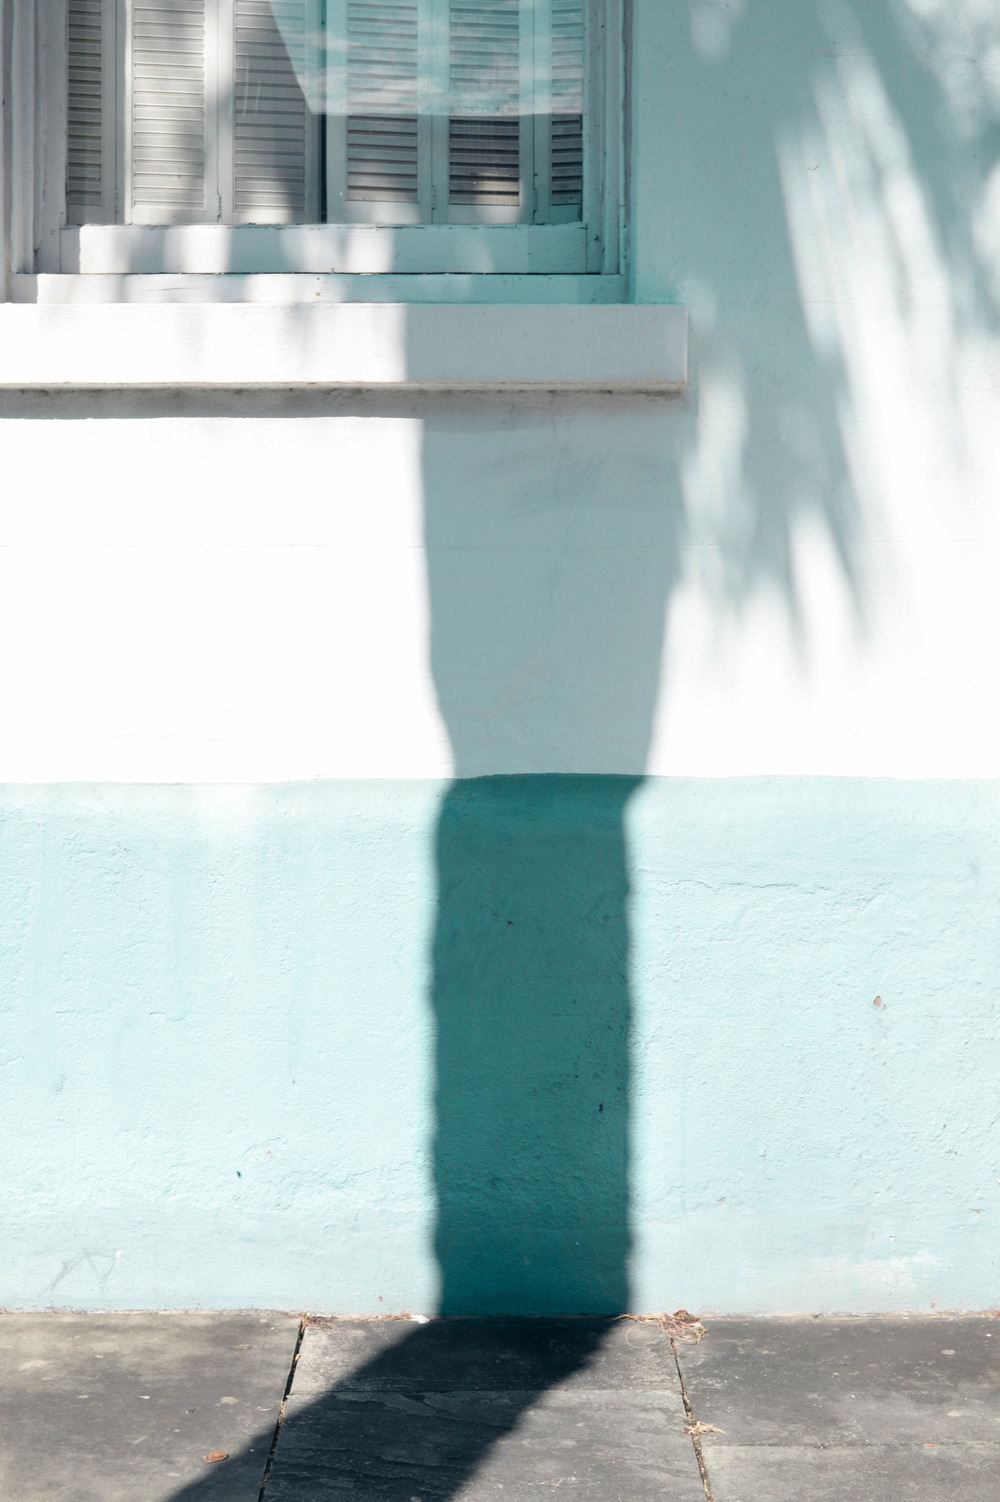 Charleston shadows. February, 2015.